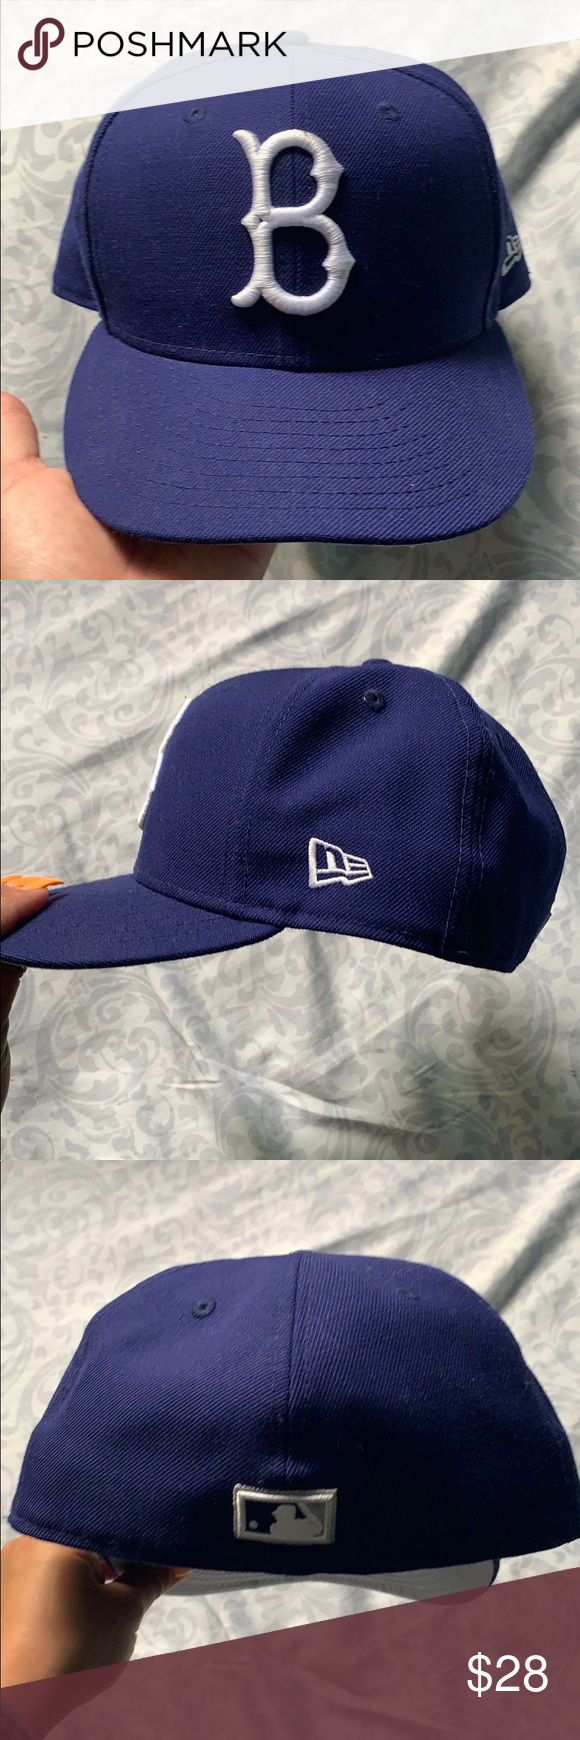 Dodgers Fitted Hat Fitted Hats Hats Women Shopping